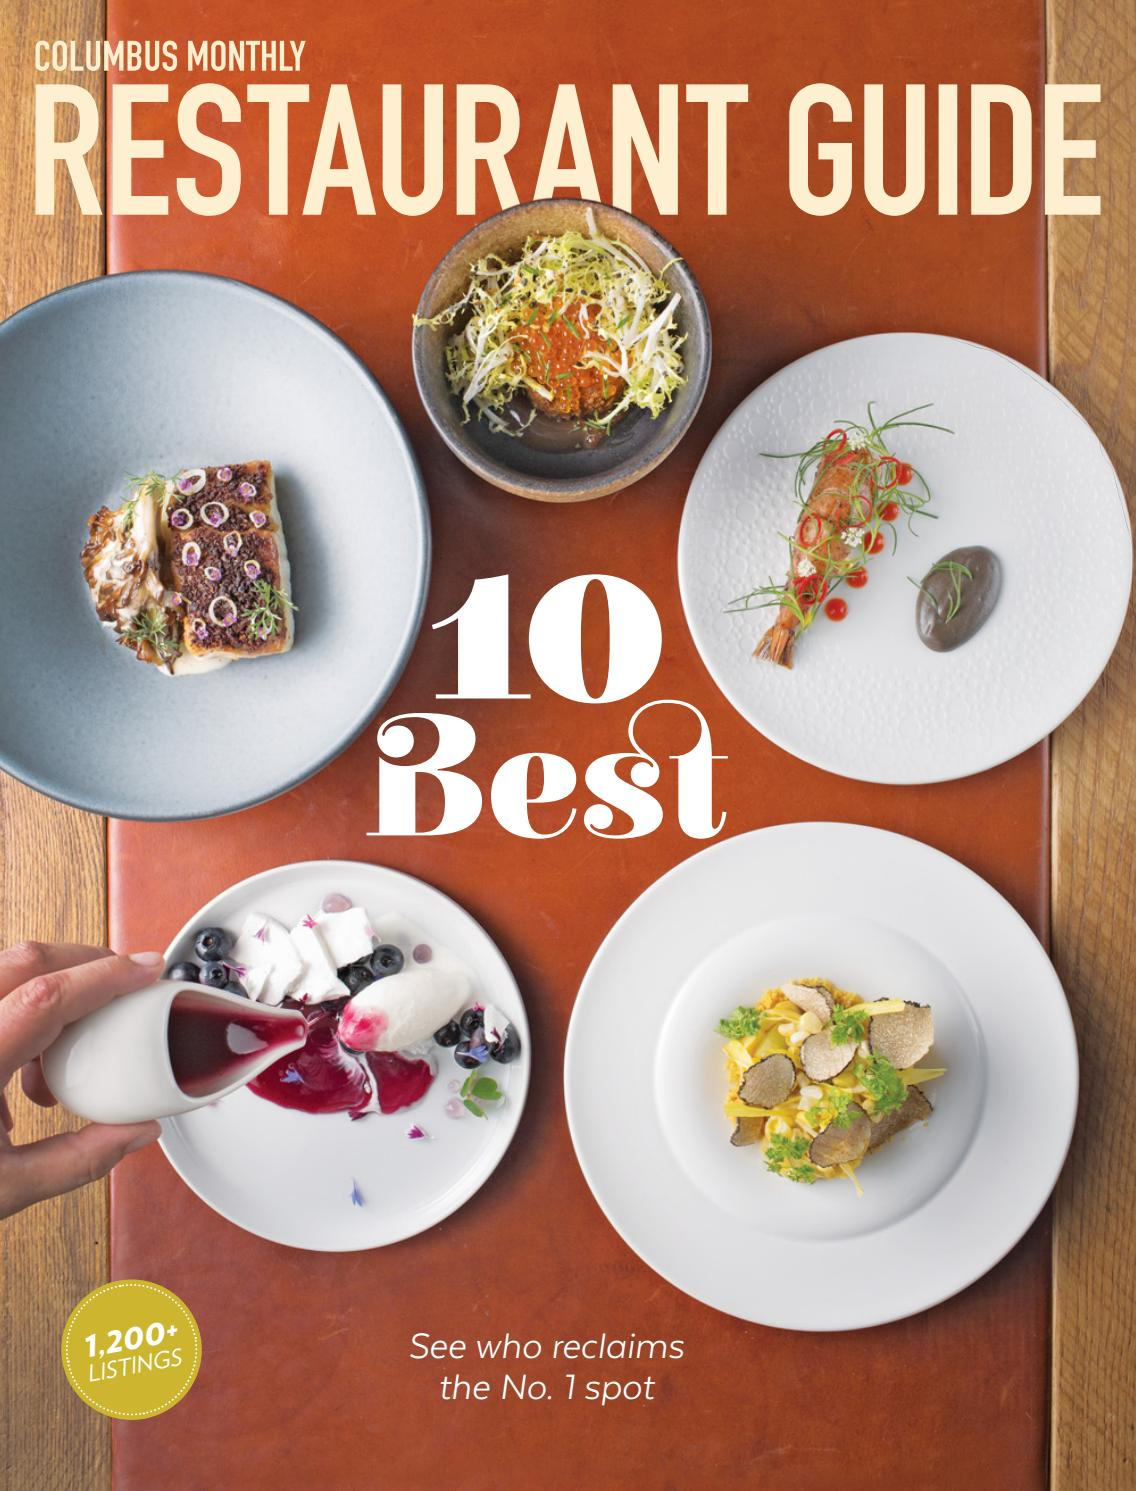 Columbus Monthly Restaurant Guide 2020 By The Columbus Dispatch